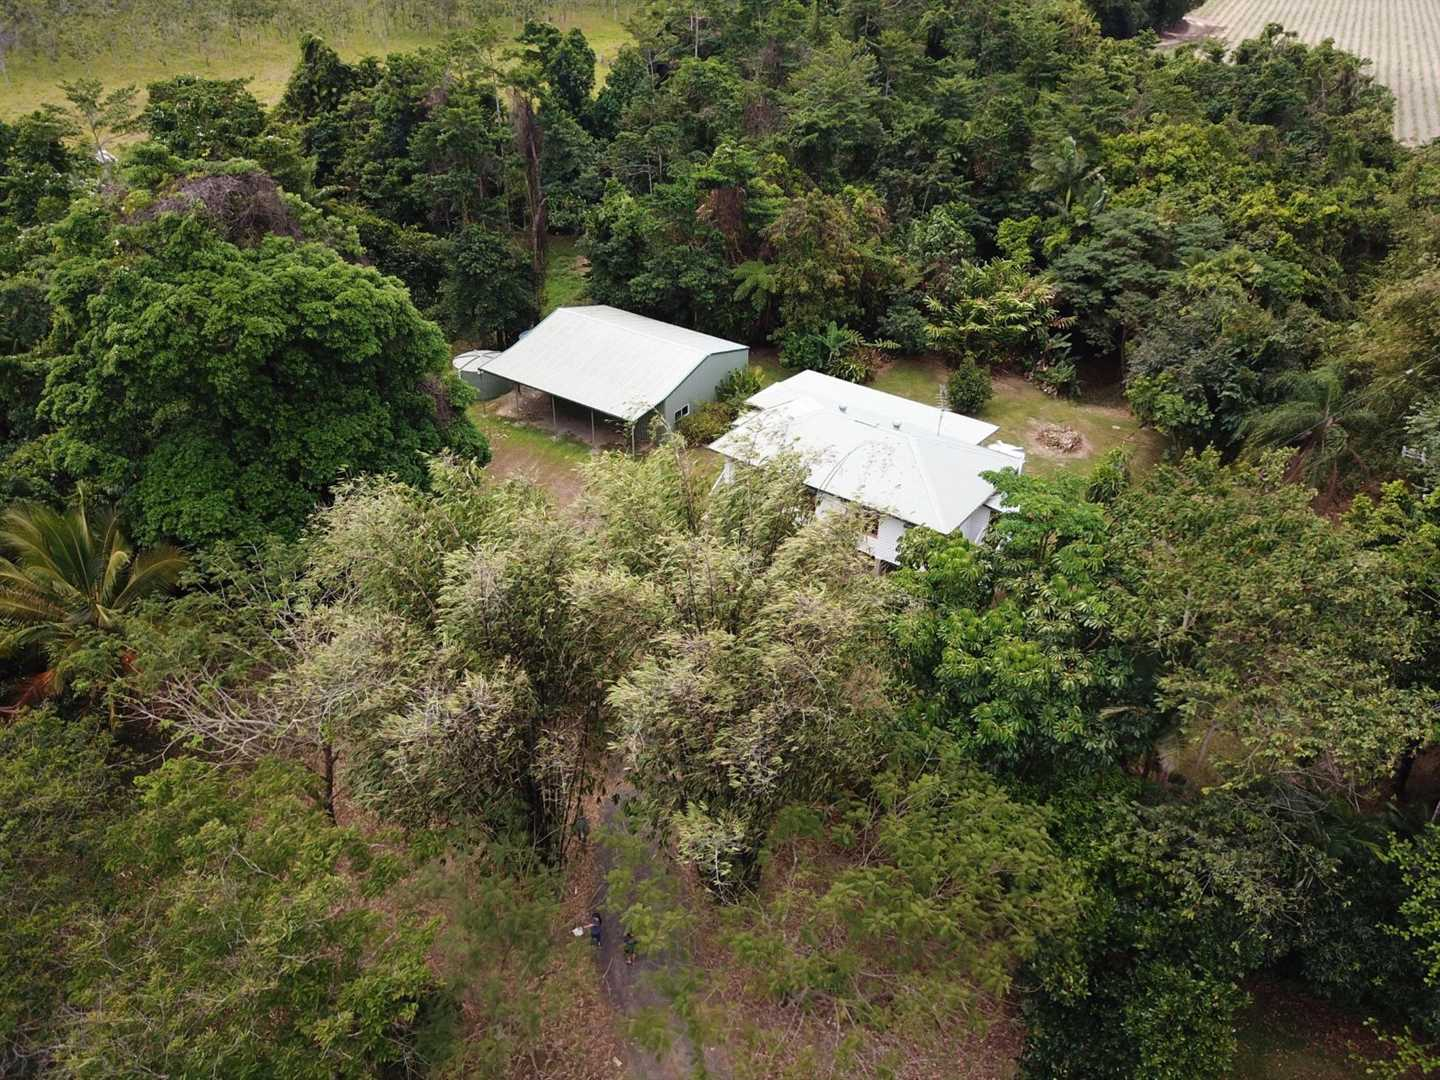 Aerial photo showing part of the property entrance, home and shed